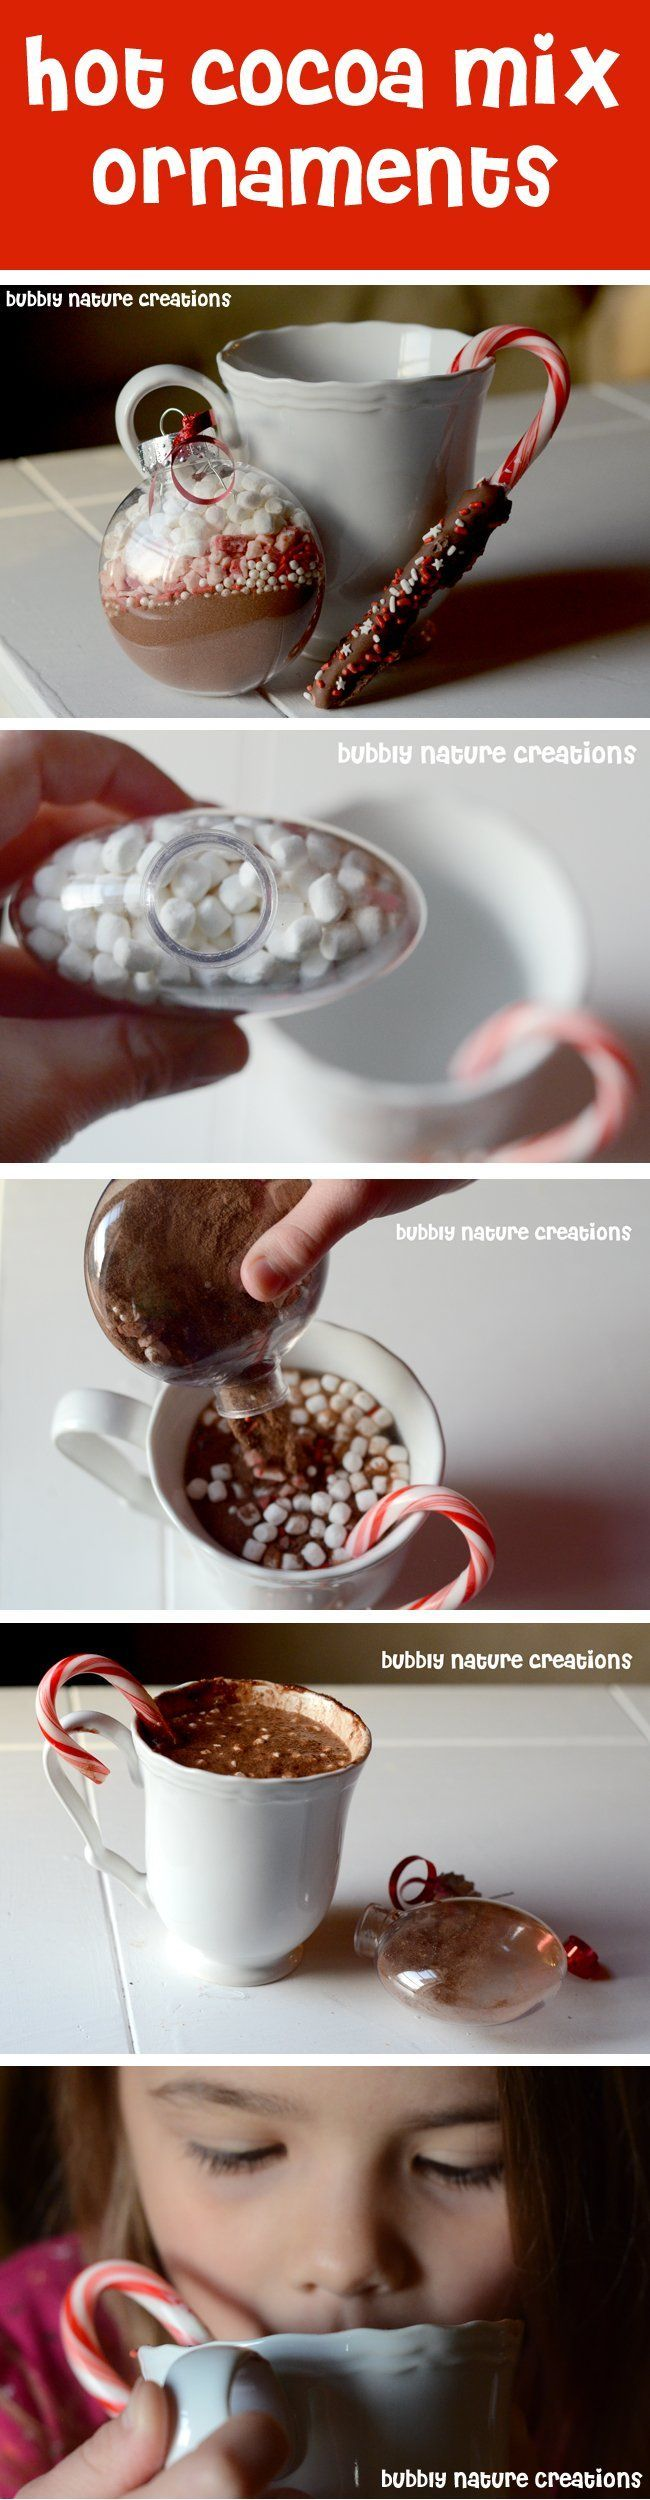 instead of ornament, the mix in a bag that goes in the mug. attach a baileys knip and personalize the mug